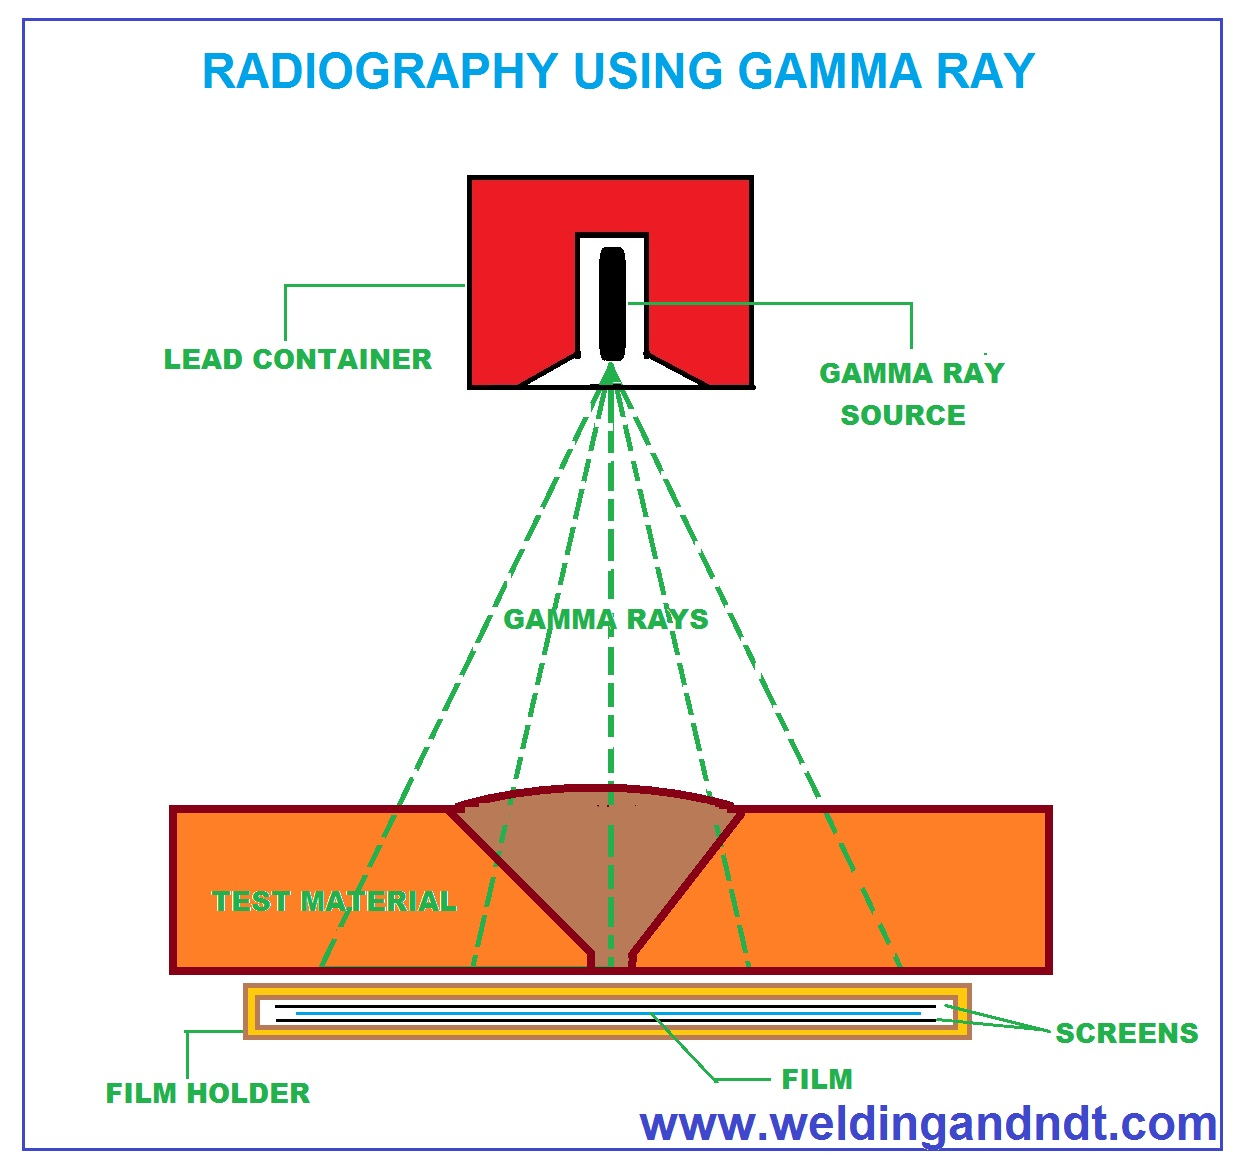 Gamma Ray Radiography technique image